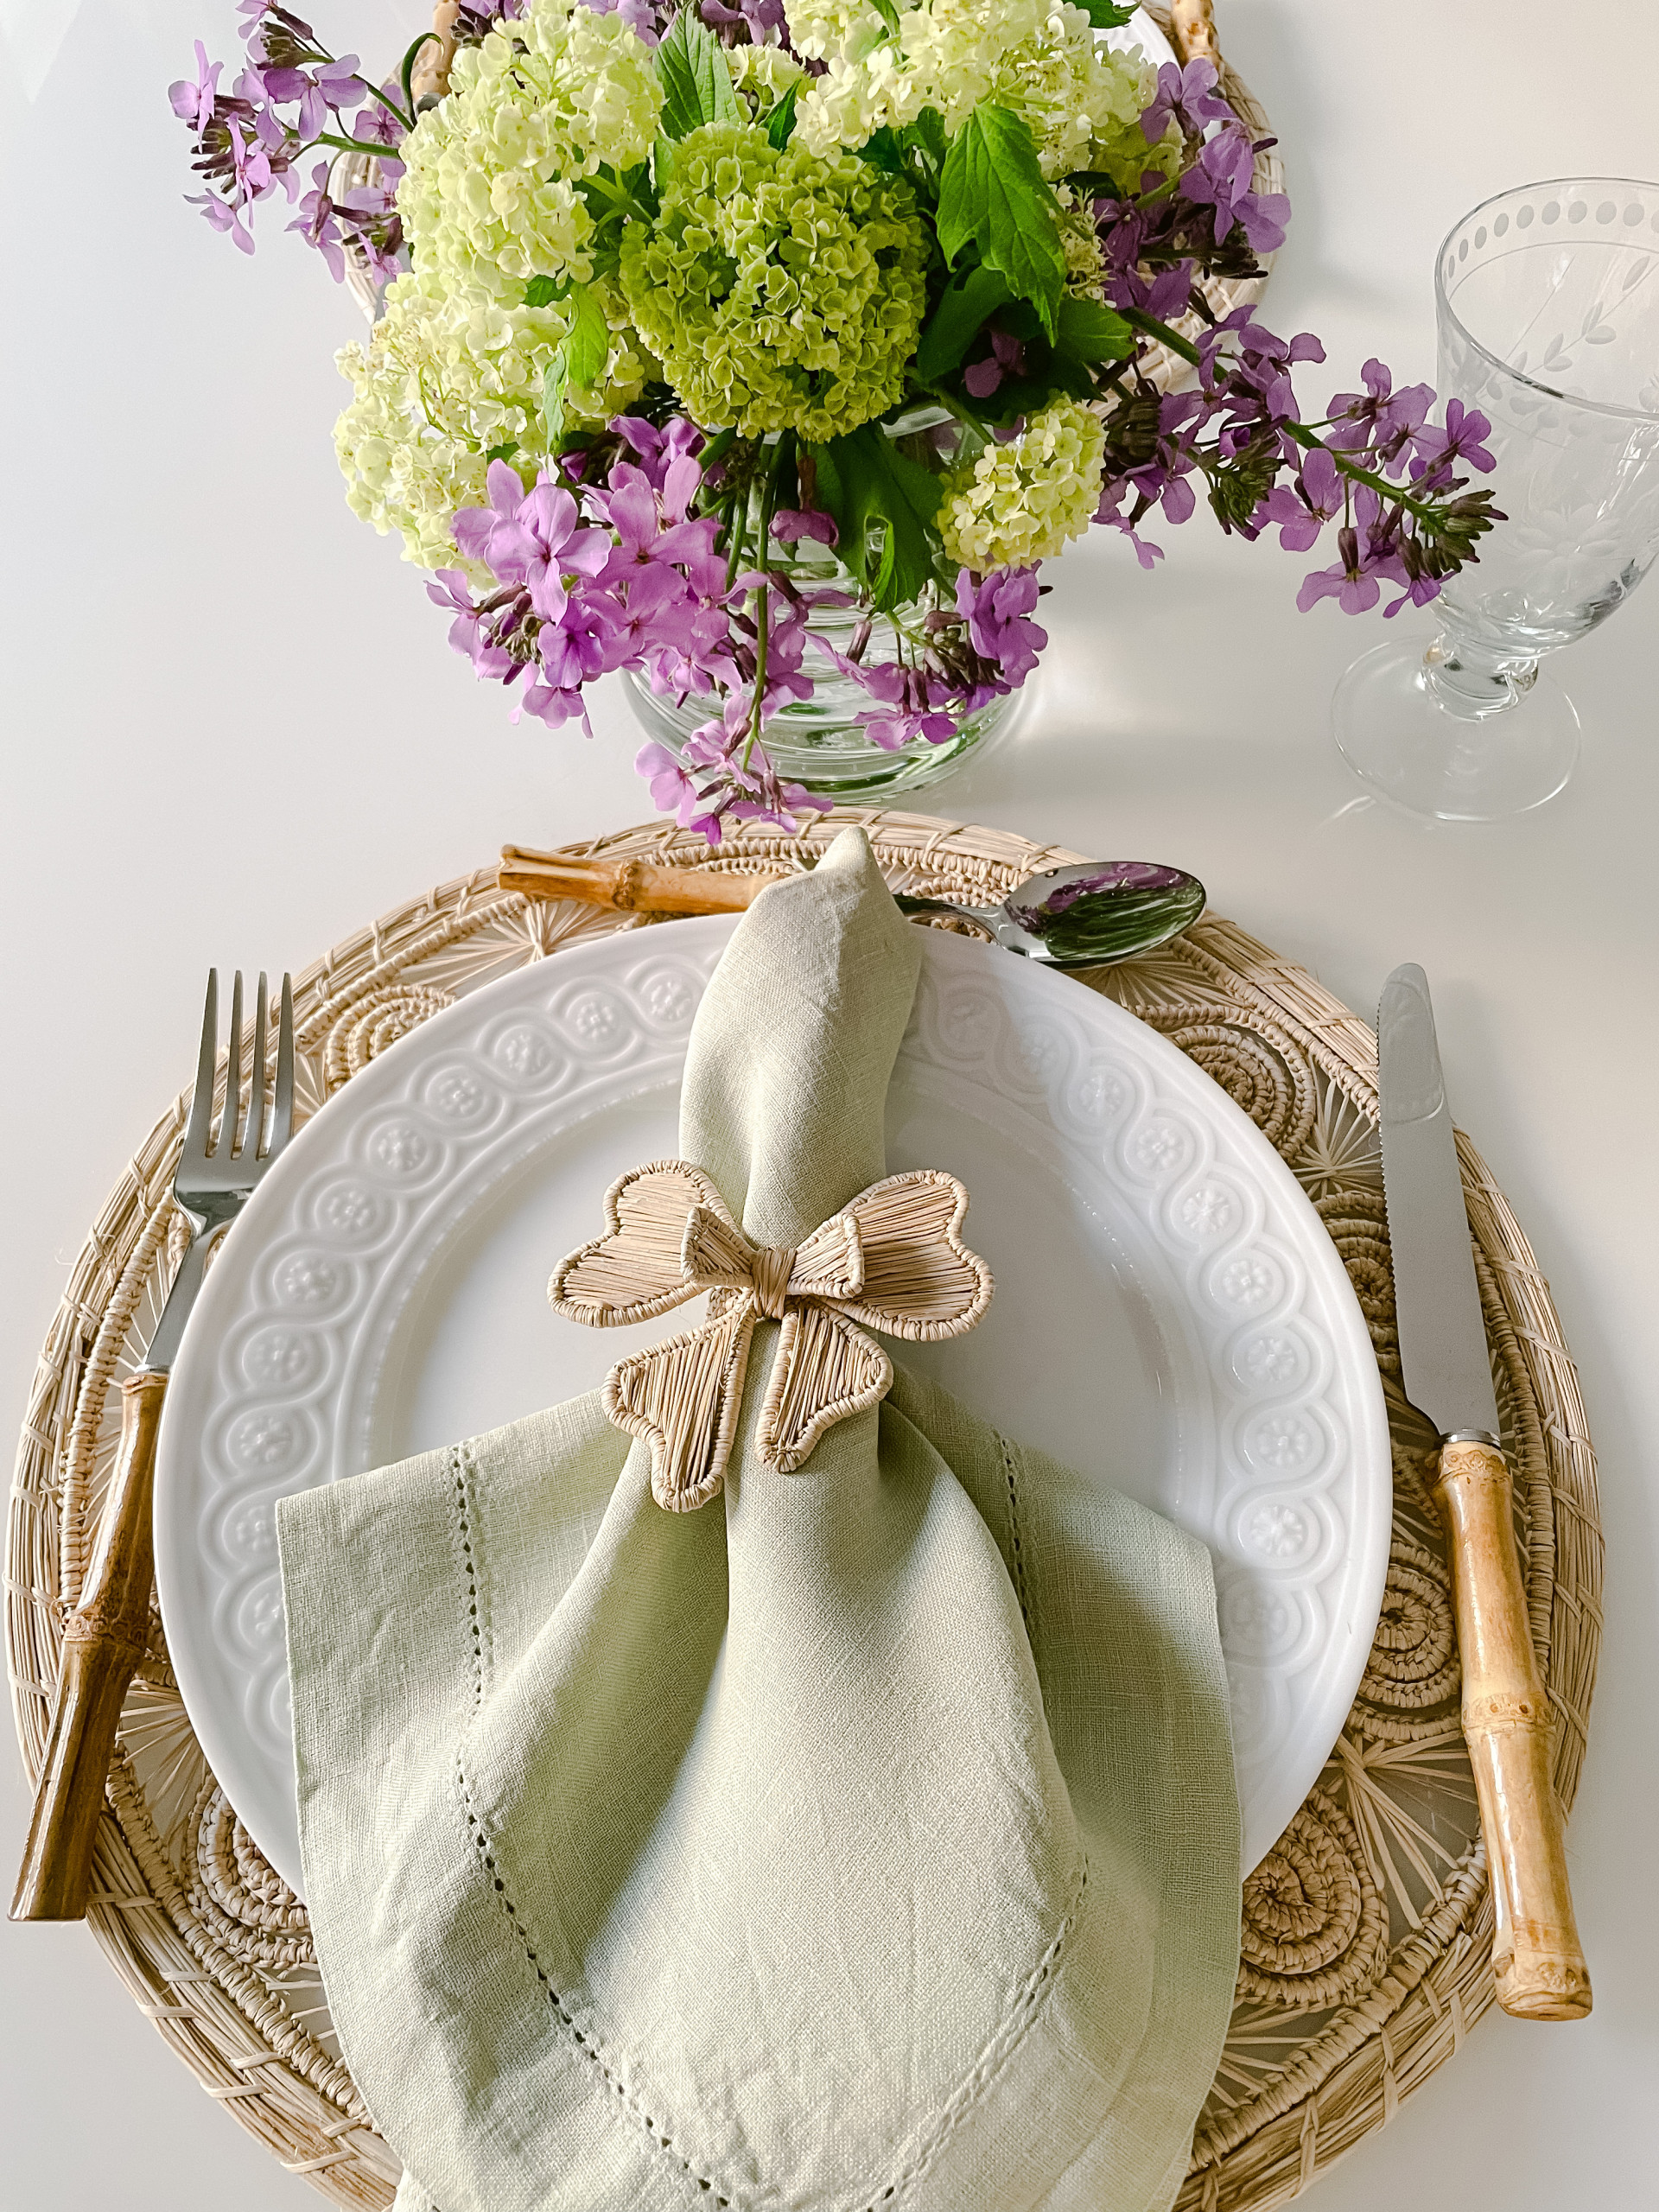 Beautiful tablescape with handmade placemats and napkin holder